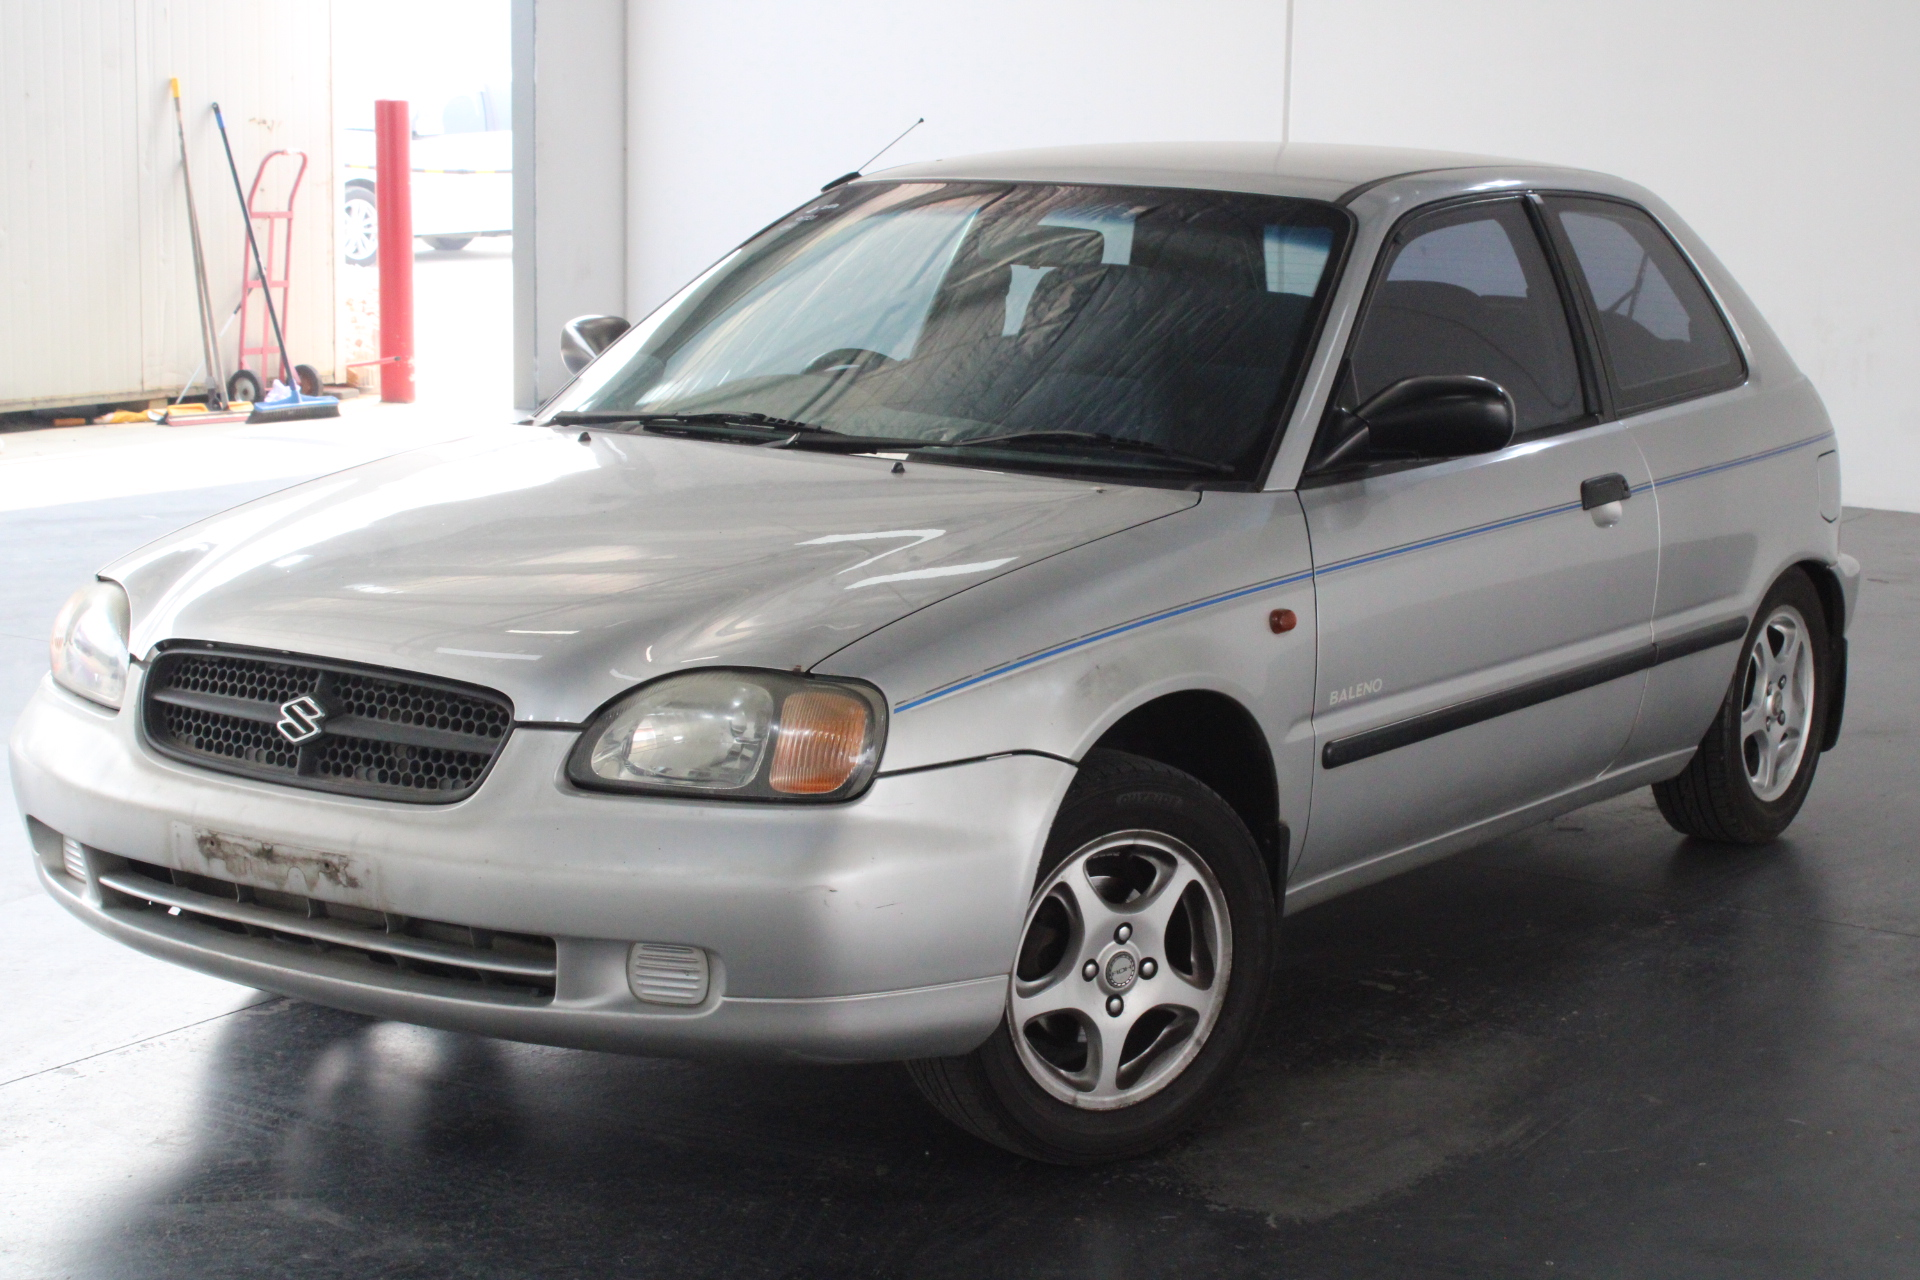 2000 Suzuki Baleno GL Manual Hatchback